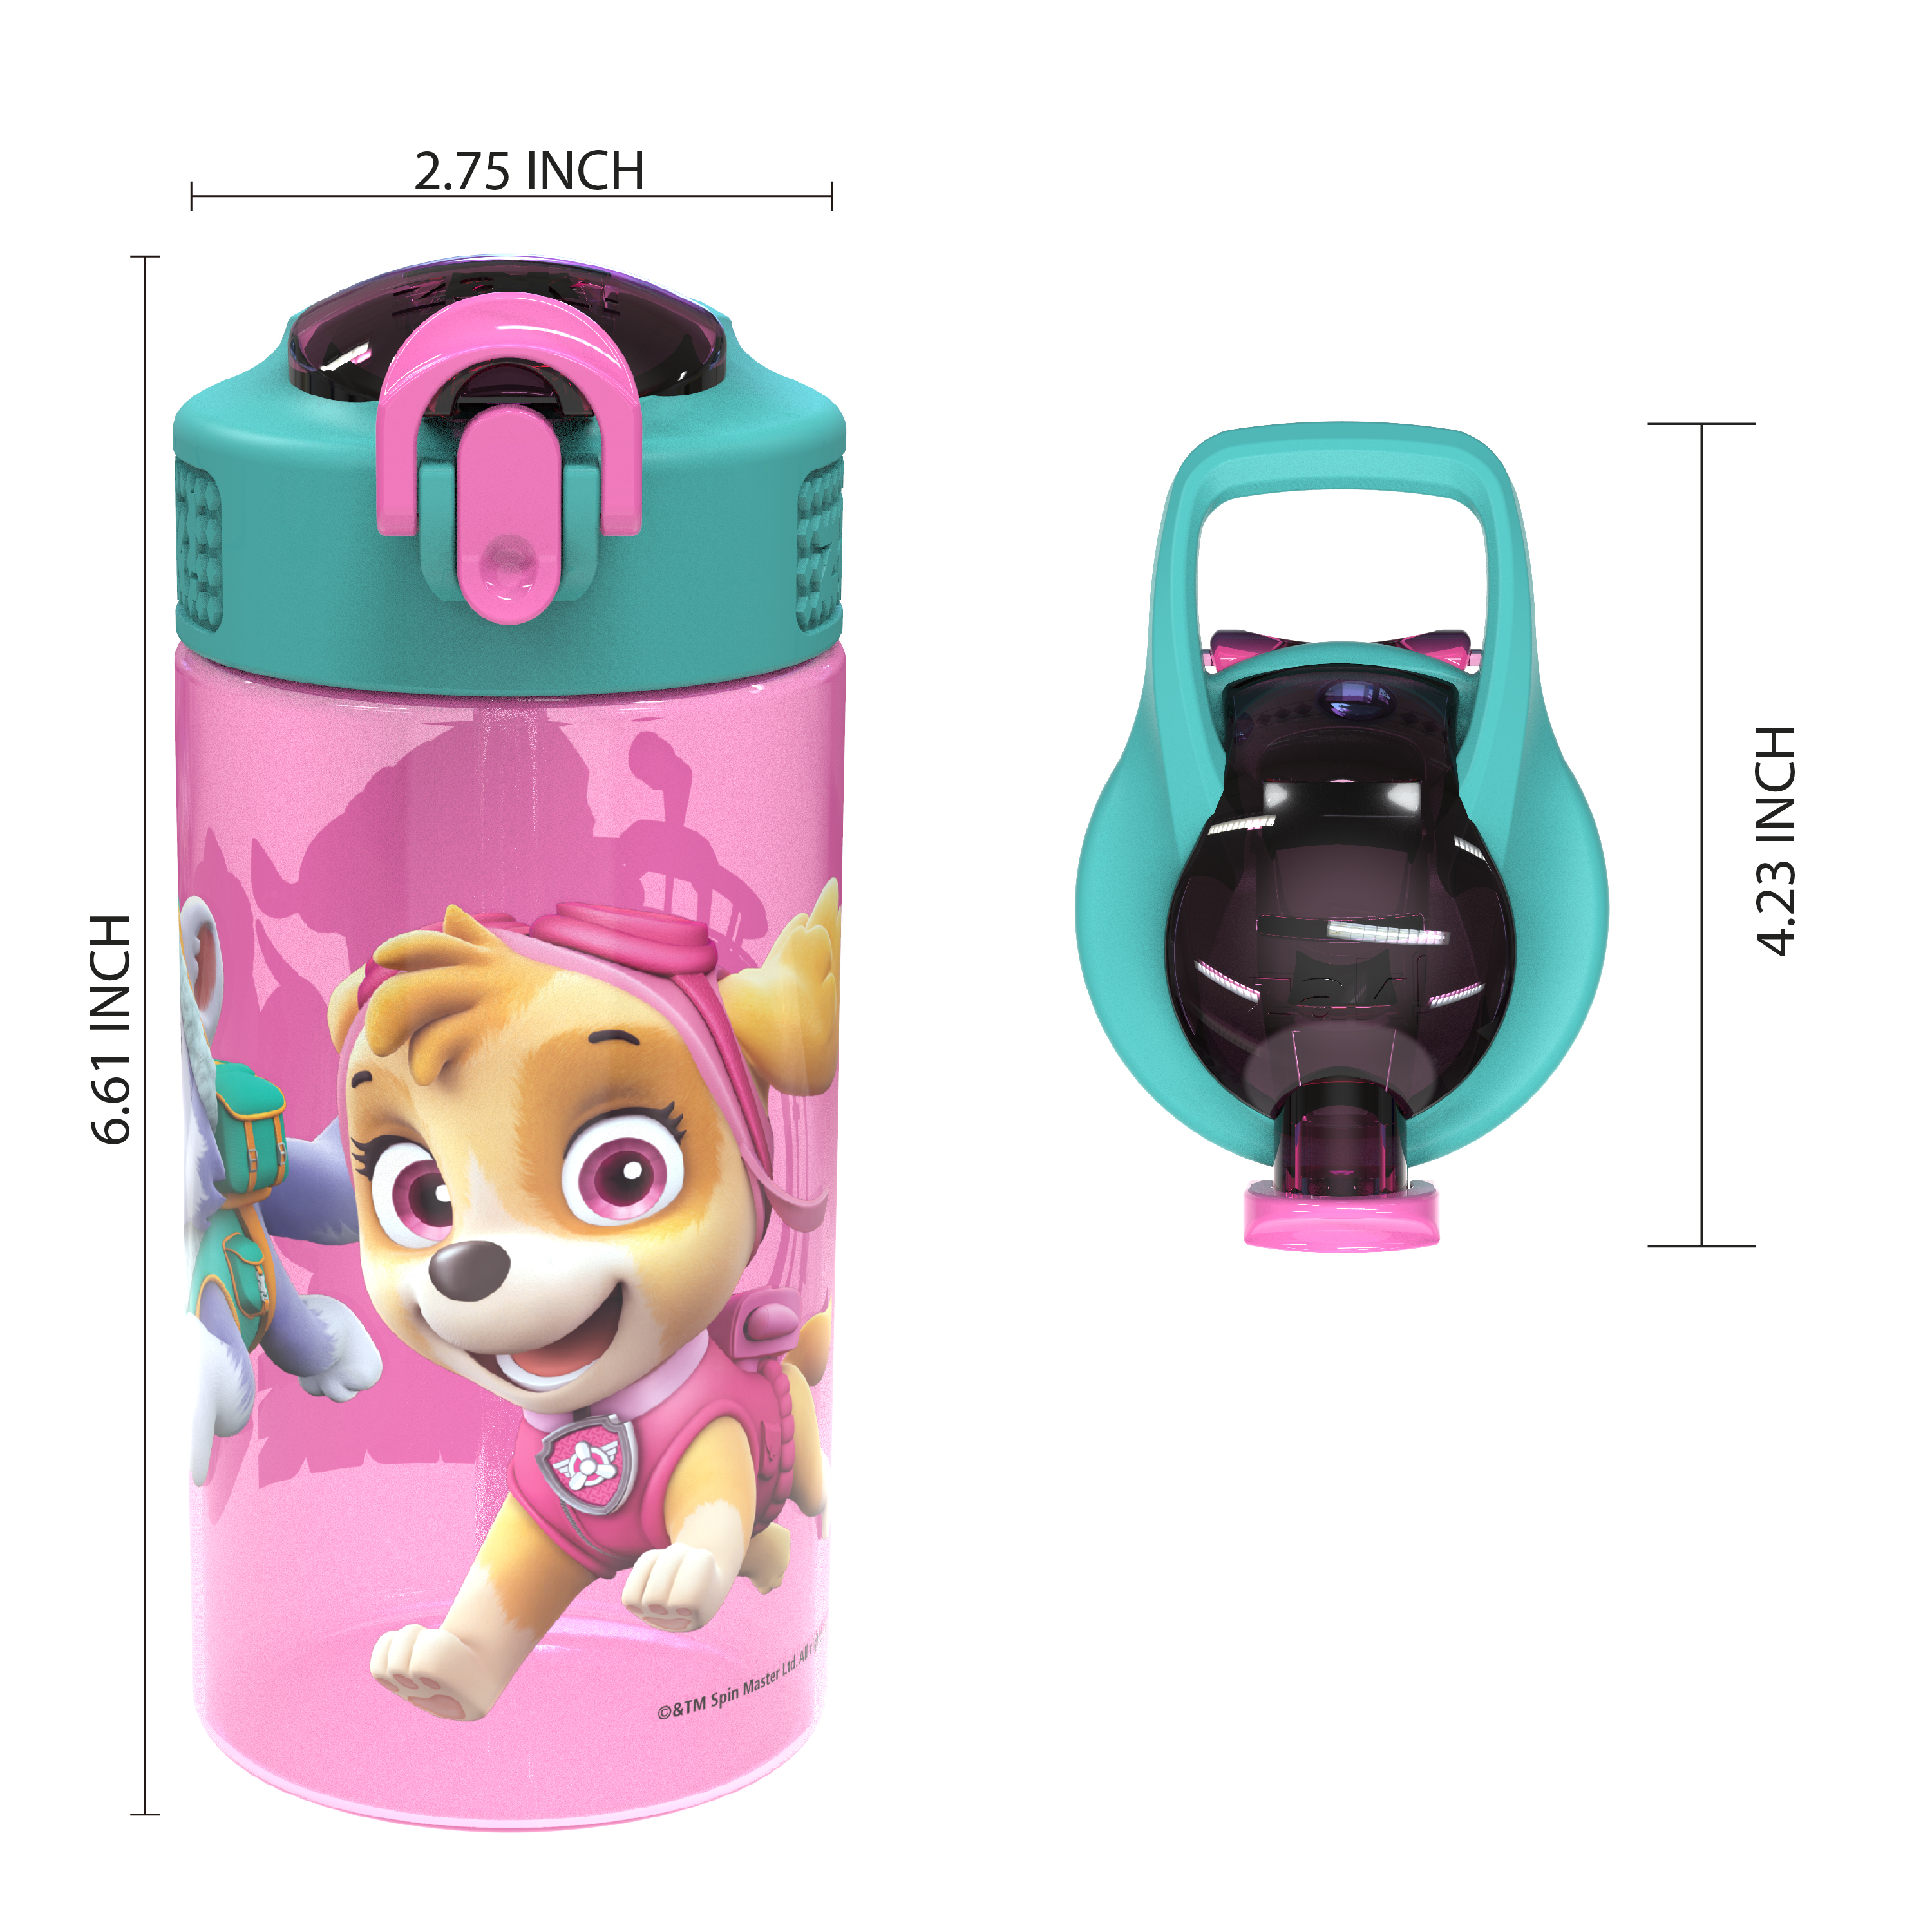 Paw Patrol 16 ounce Reusable Plastic Water Bottle with Straw, Skye, 2-piece set slideshow image 5